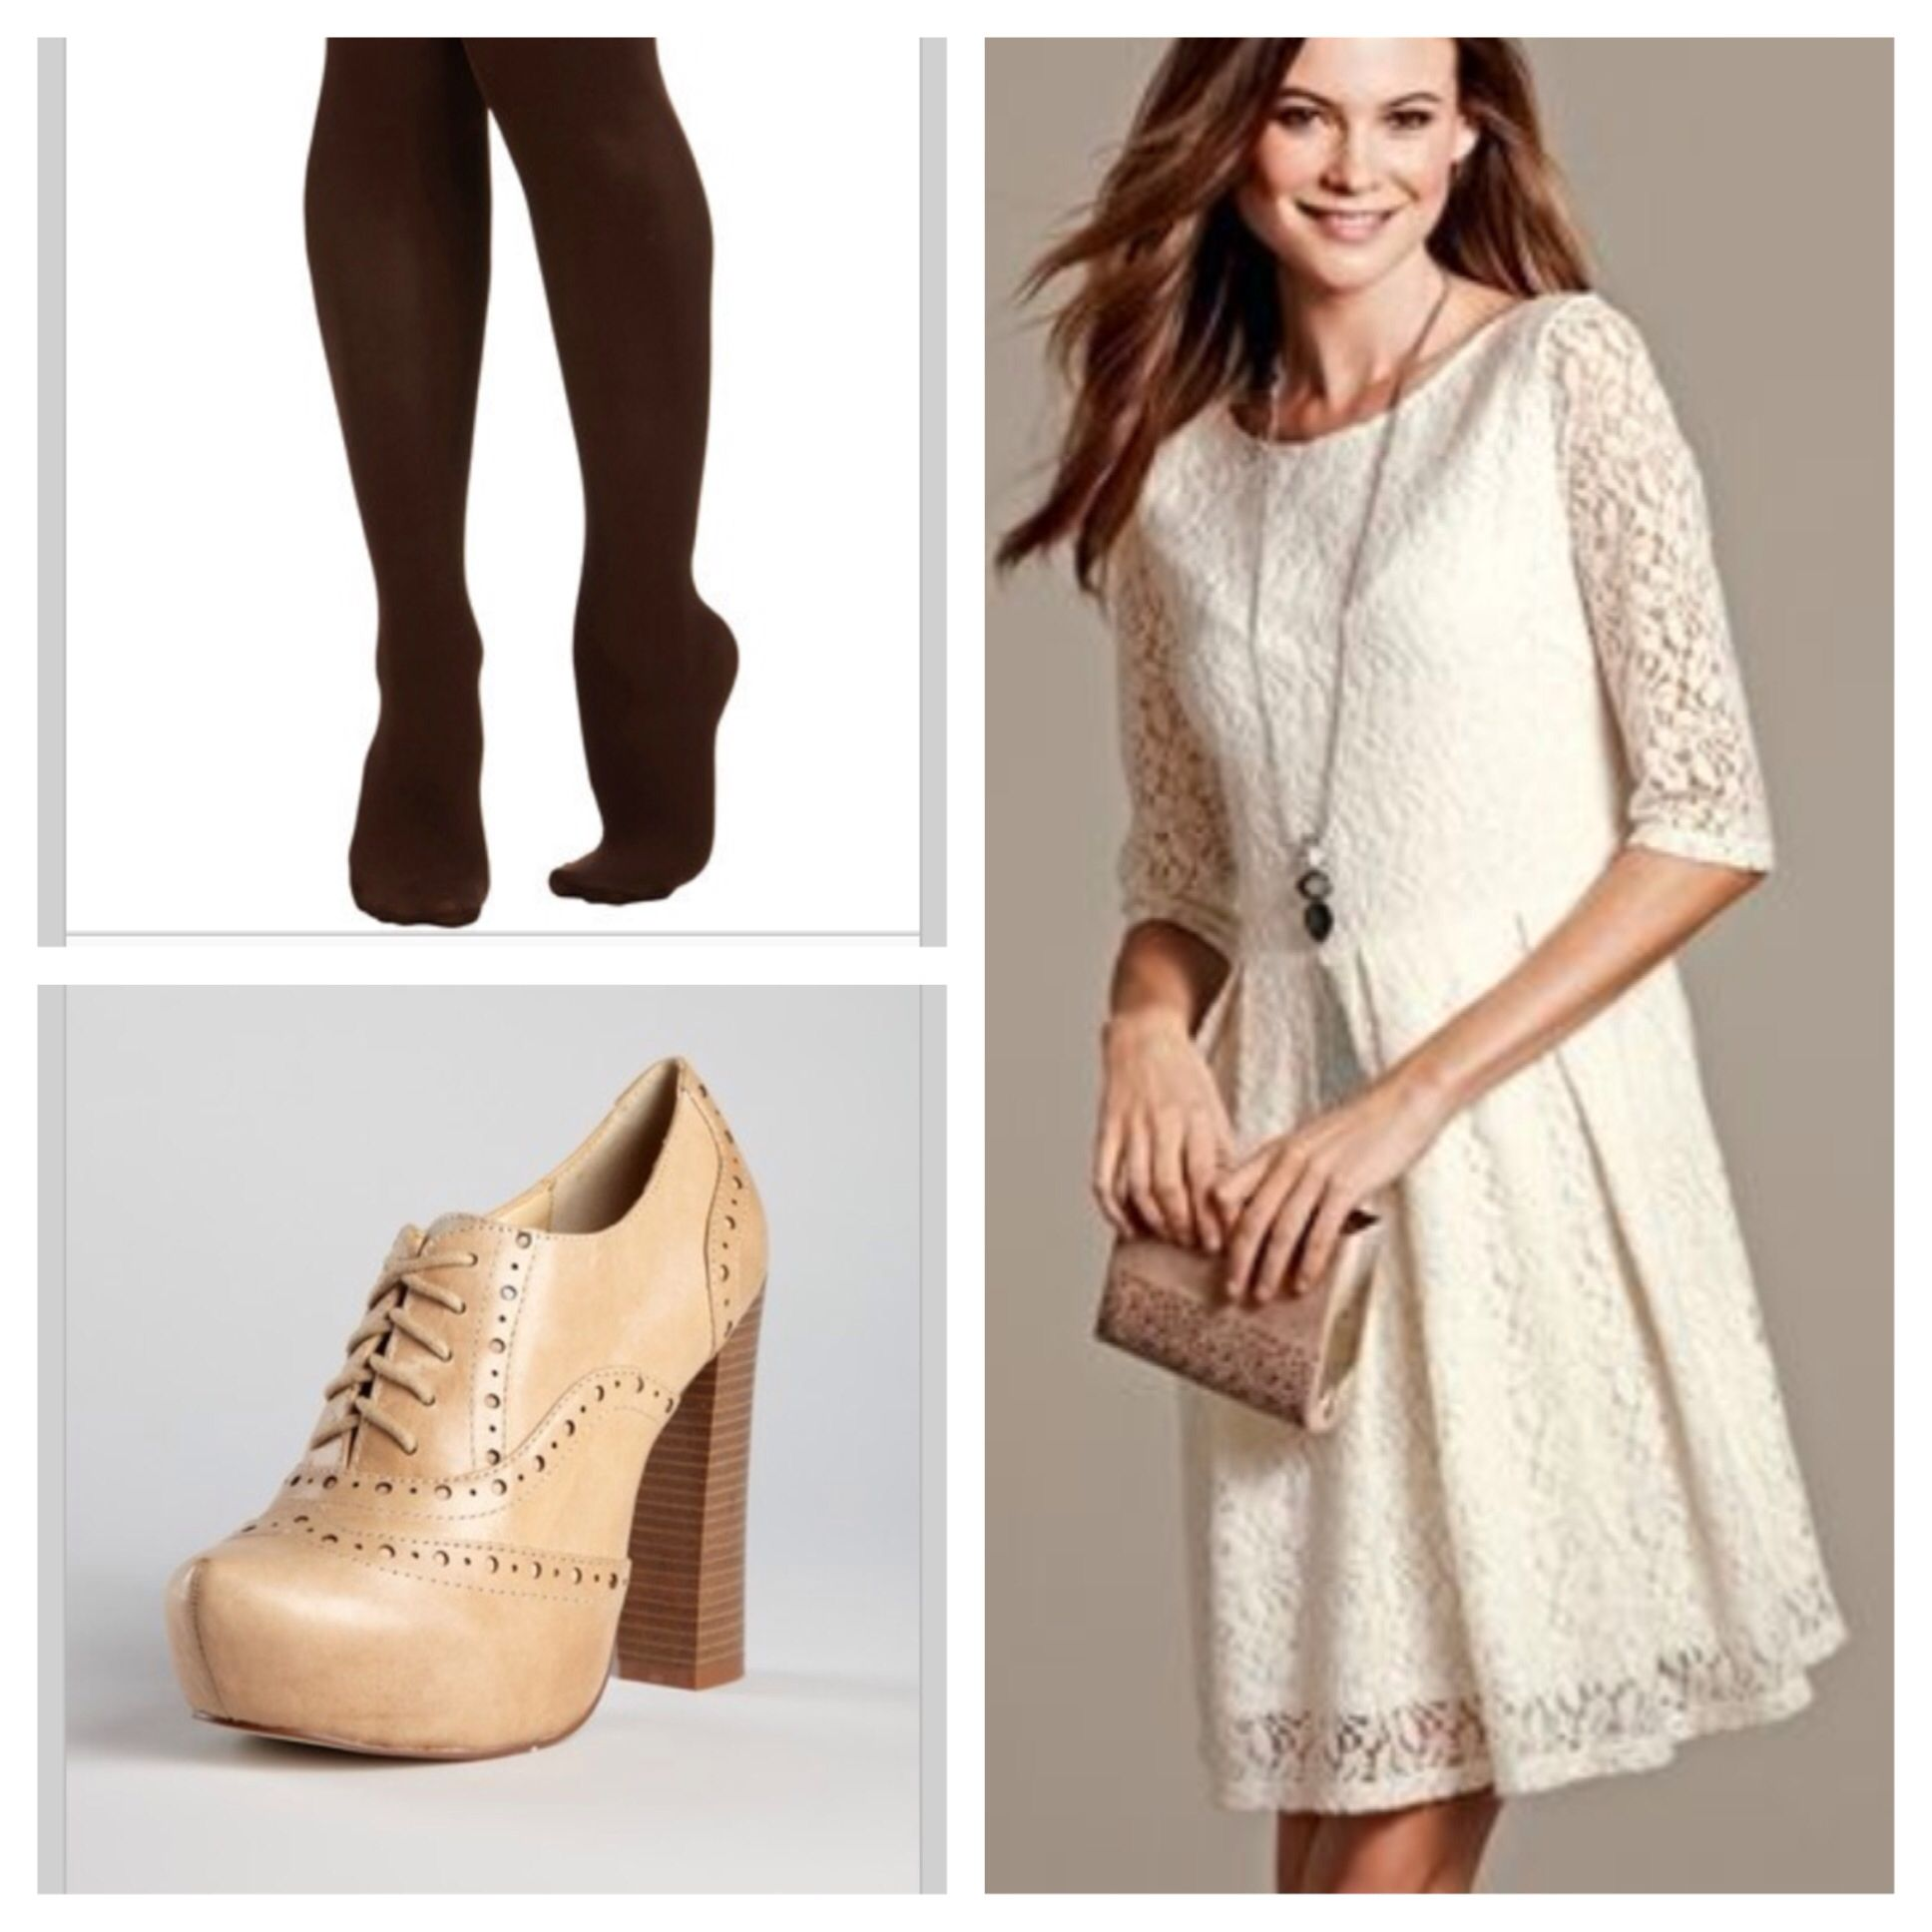 Cream Lace dress   brown tights   oxford heels | Cute & Modest ...